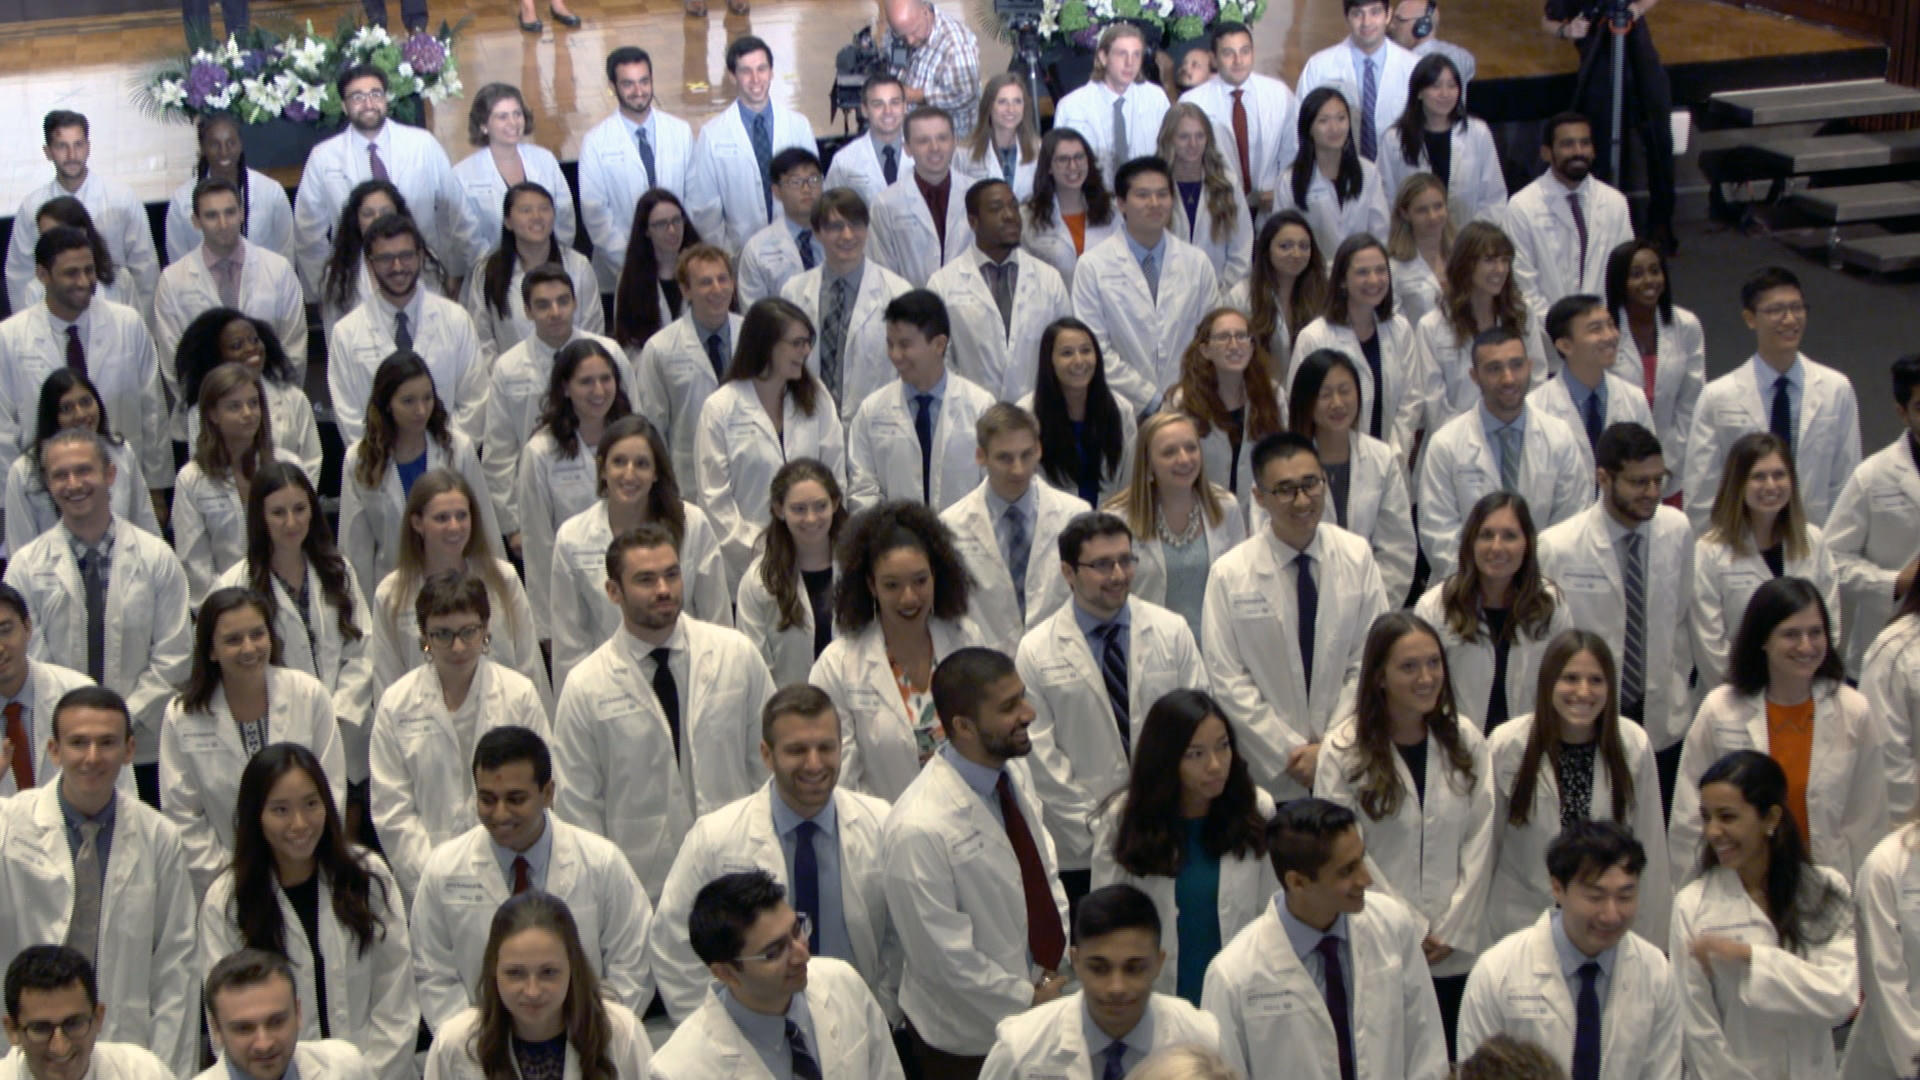 Tuition-free medical school: How the NYU School of Medicine